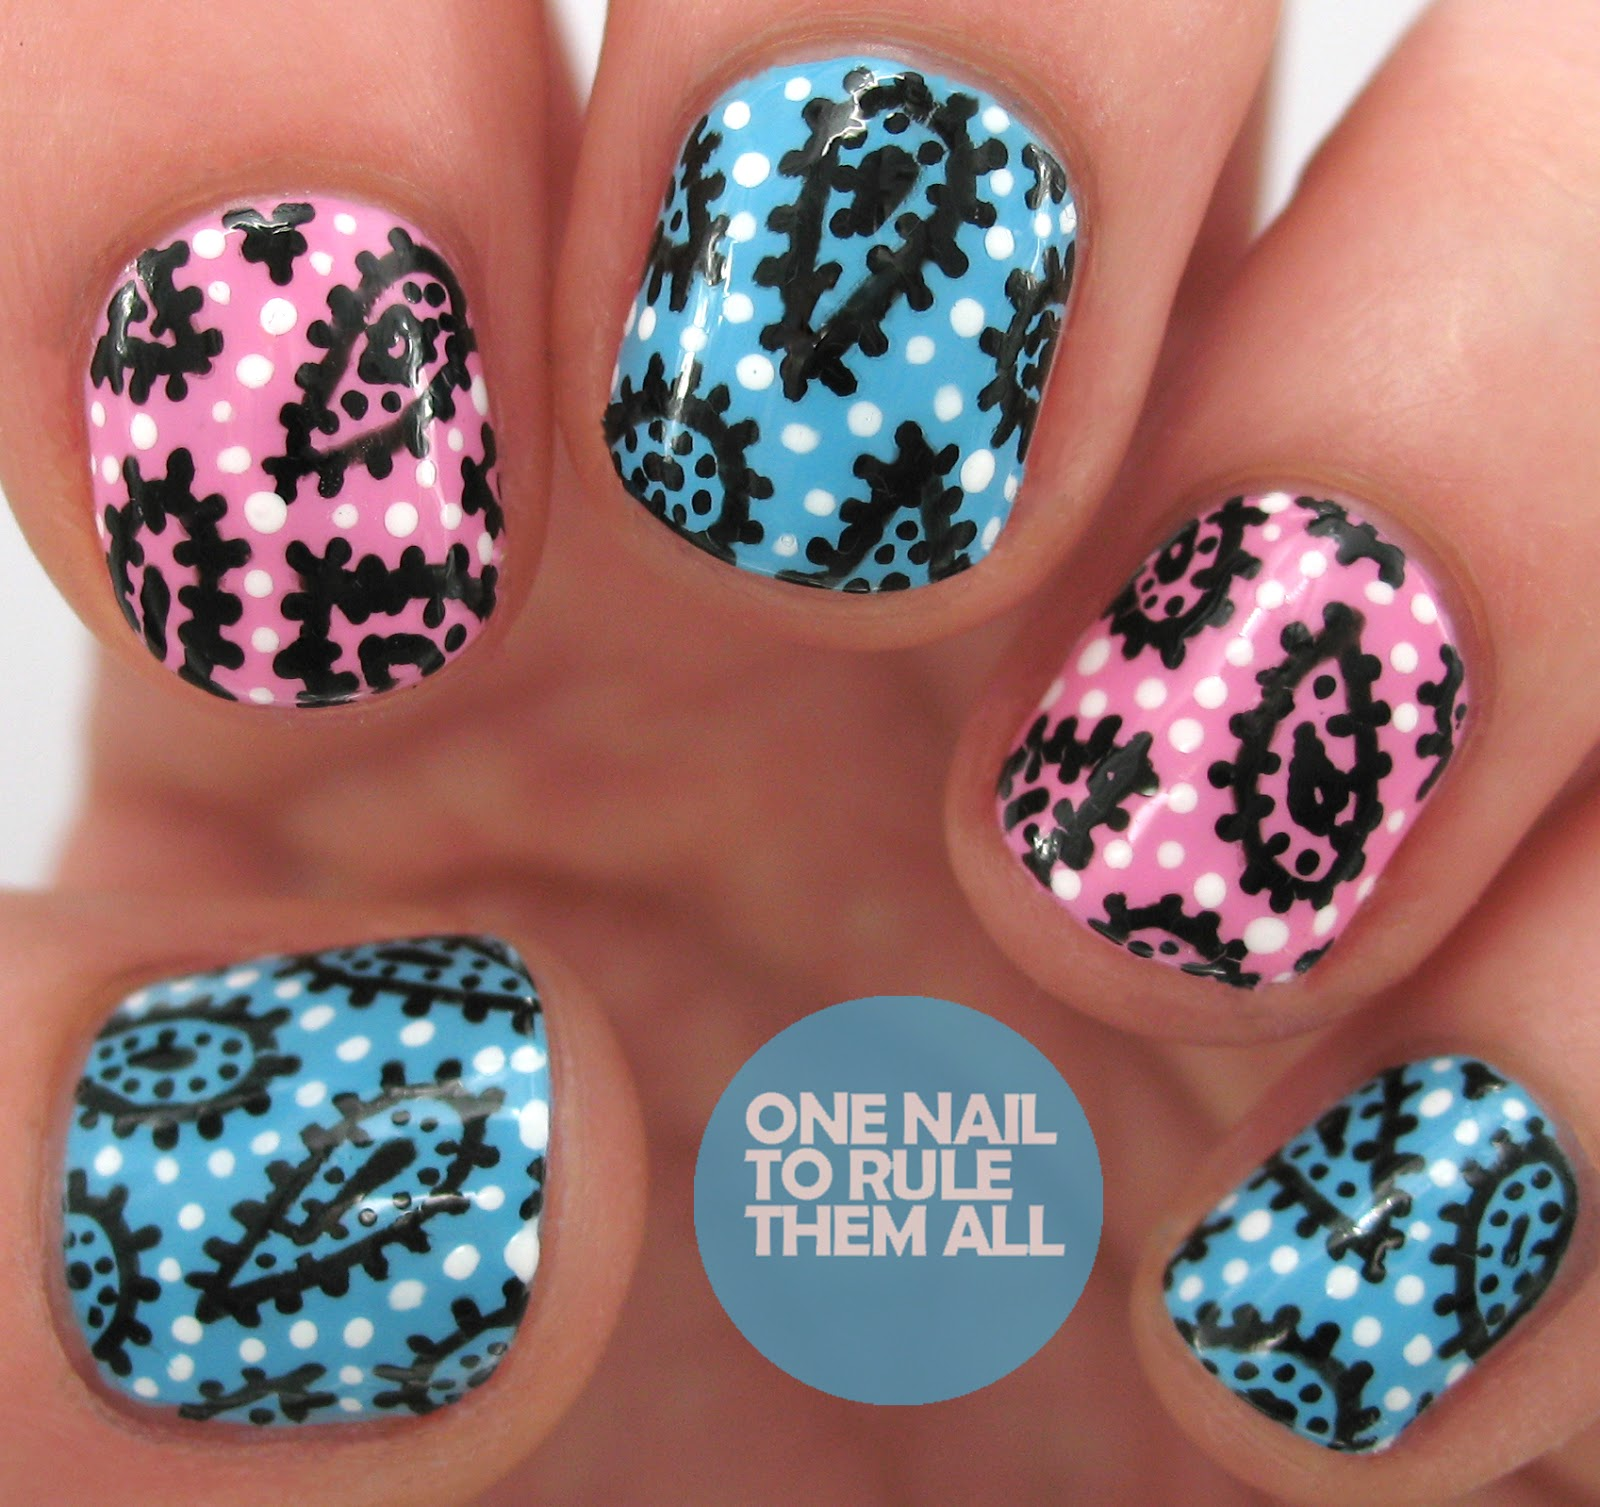 One Nail To Rule Them All Barry M Nail Art Pens Review: One Nail To Rule Them All: Paisley Pens For Barry M